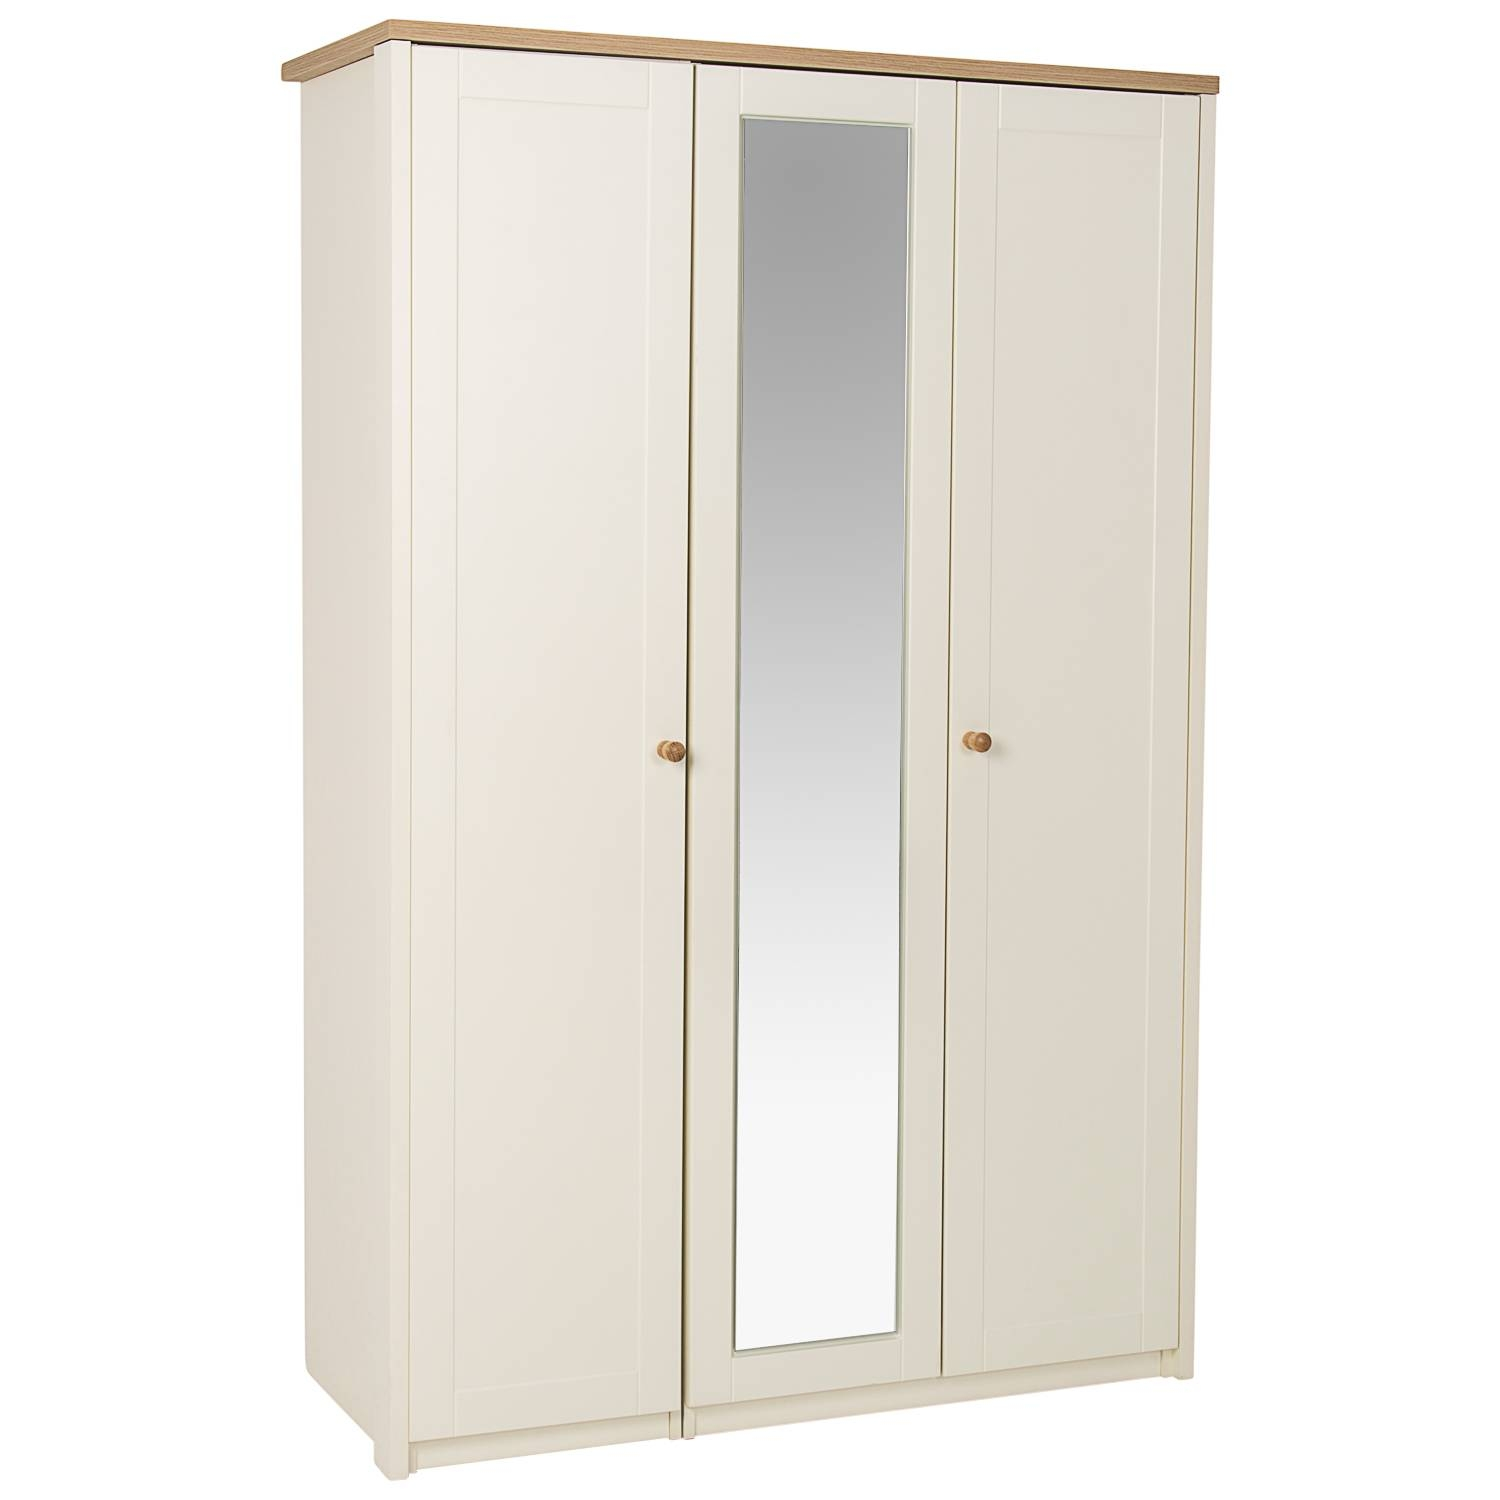 Findon 3 Door Mirrored Wardrobe – Next Day Delivery Findon 3 Door pertaining to 3 Door Mirrored Wardrobes (Image 9 of 15)